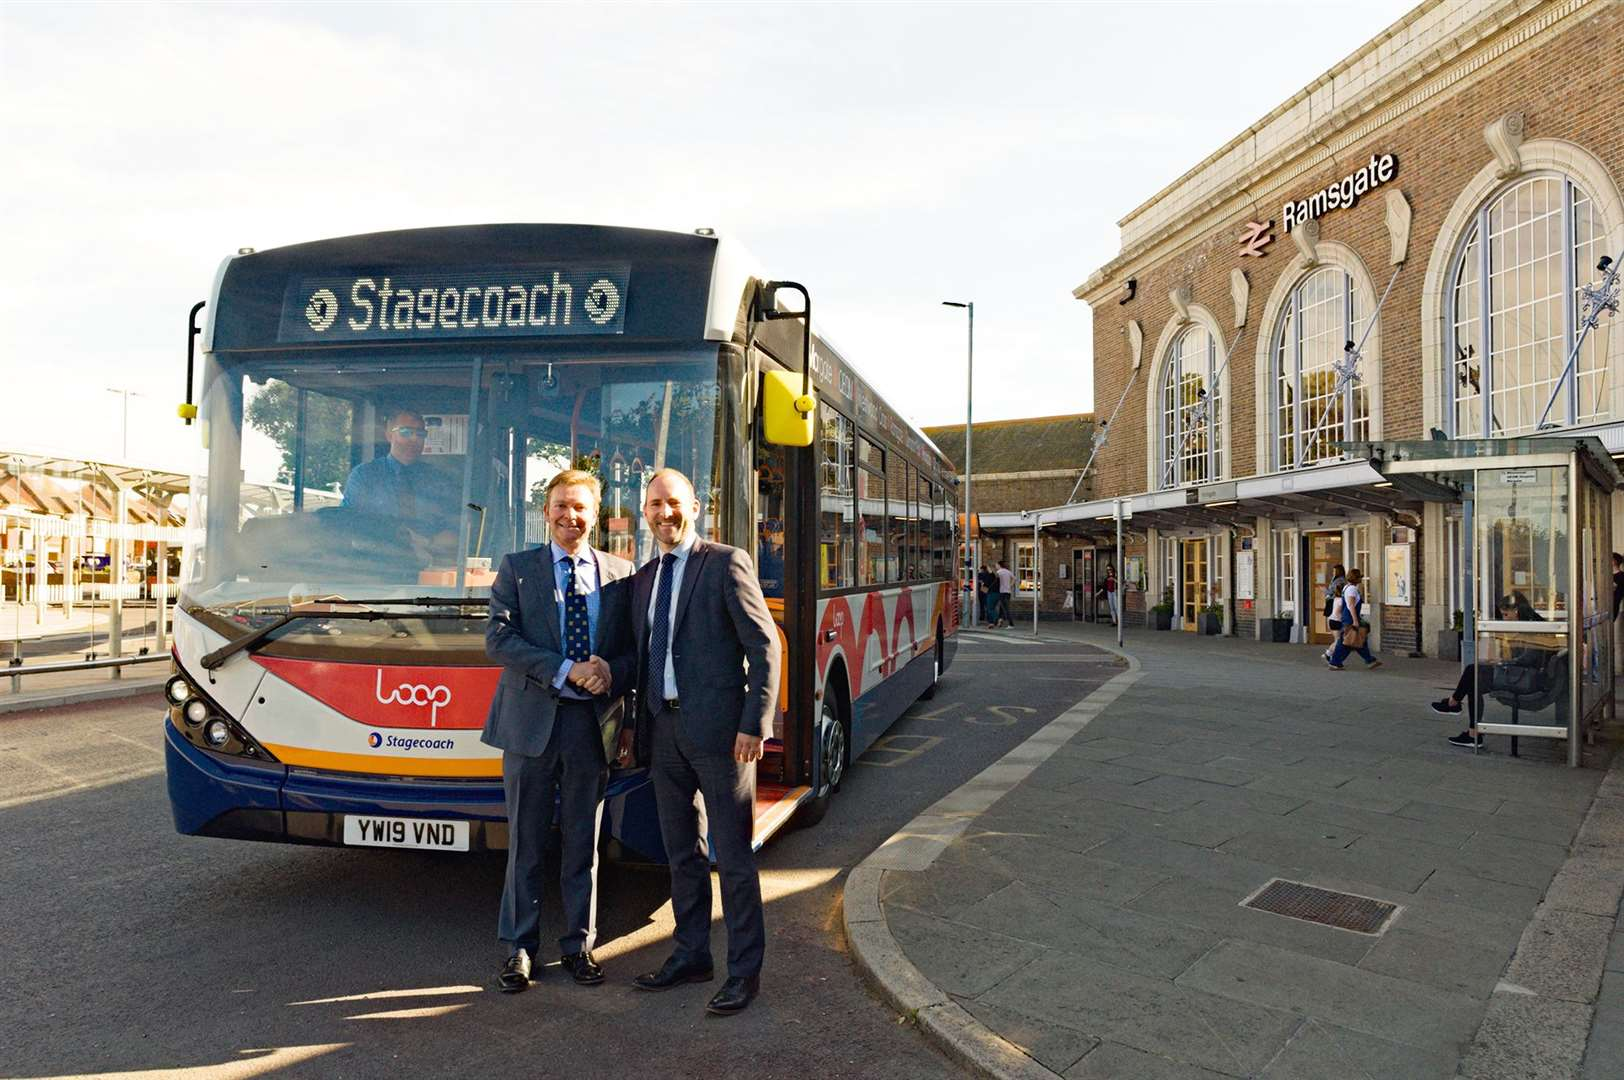 Stagecoach South East managing director Joel Mitchell, right, with South Thanet MP Craig Mackinlay in front of one of 24 brand new biodiesel Loop buses for Thanet (12550624)